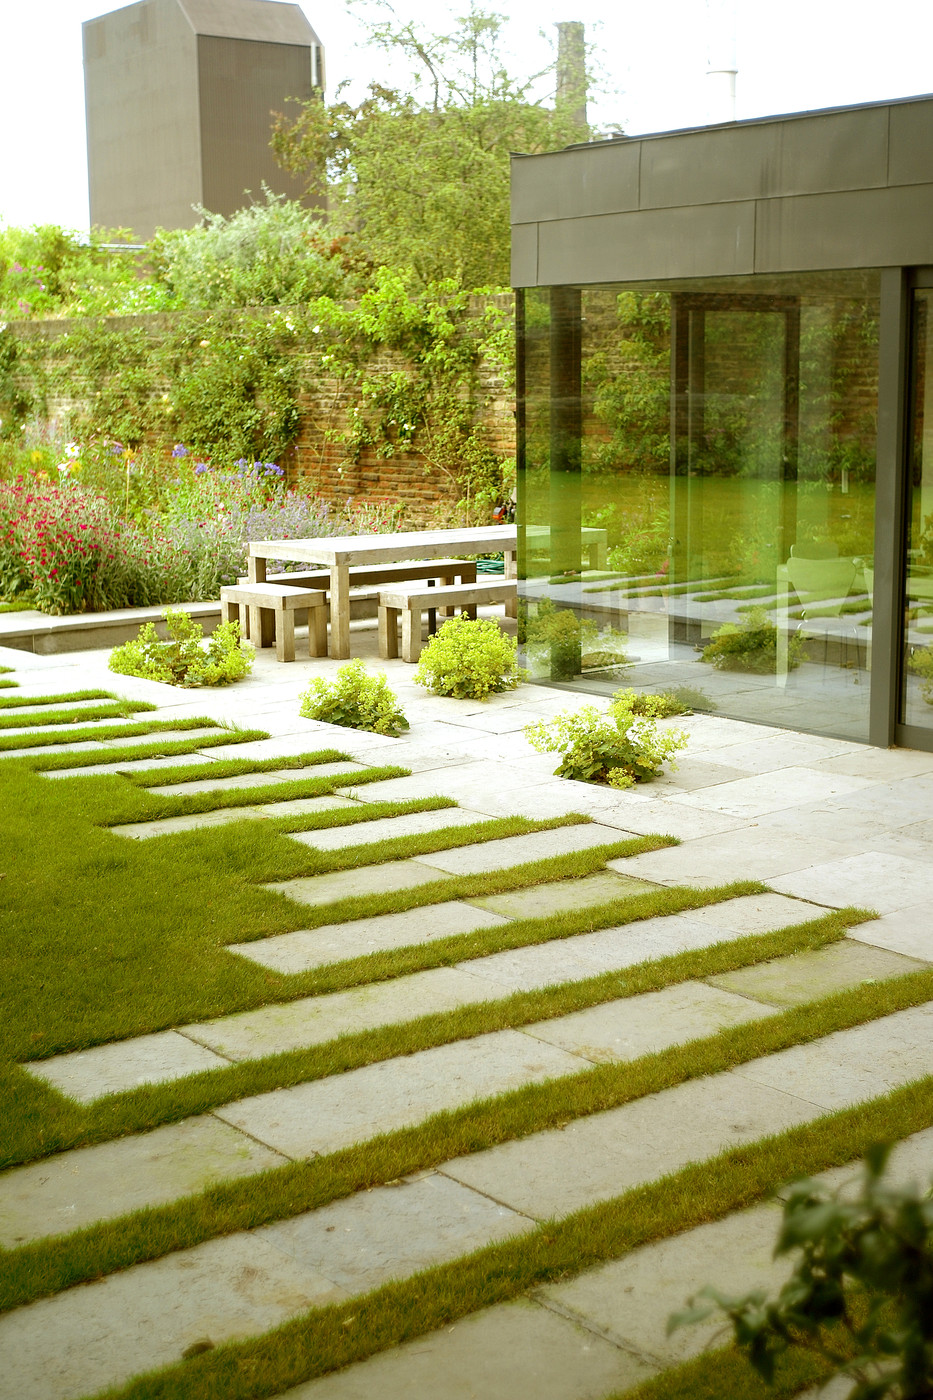 Stepping Stones Photos, Design, Ideas, Remodel, and Decor ... on Stepping Stone Patio Ideas  id=18246